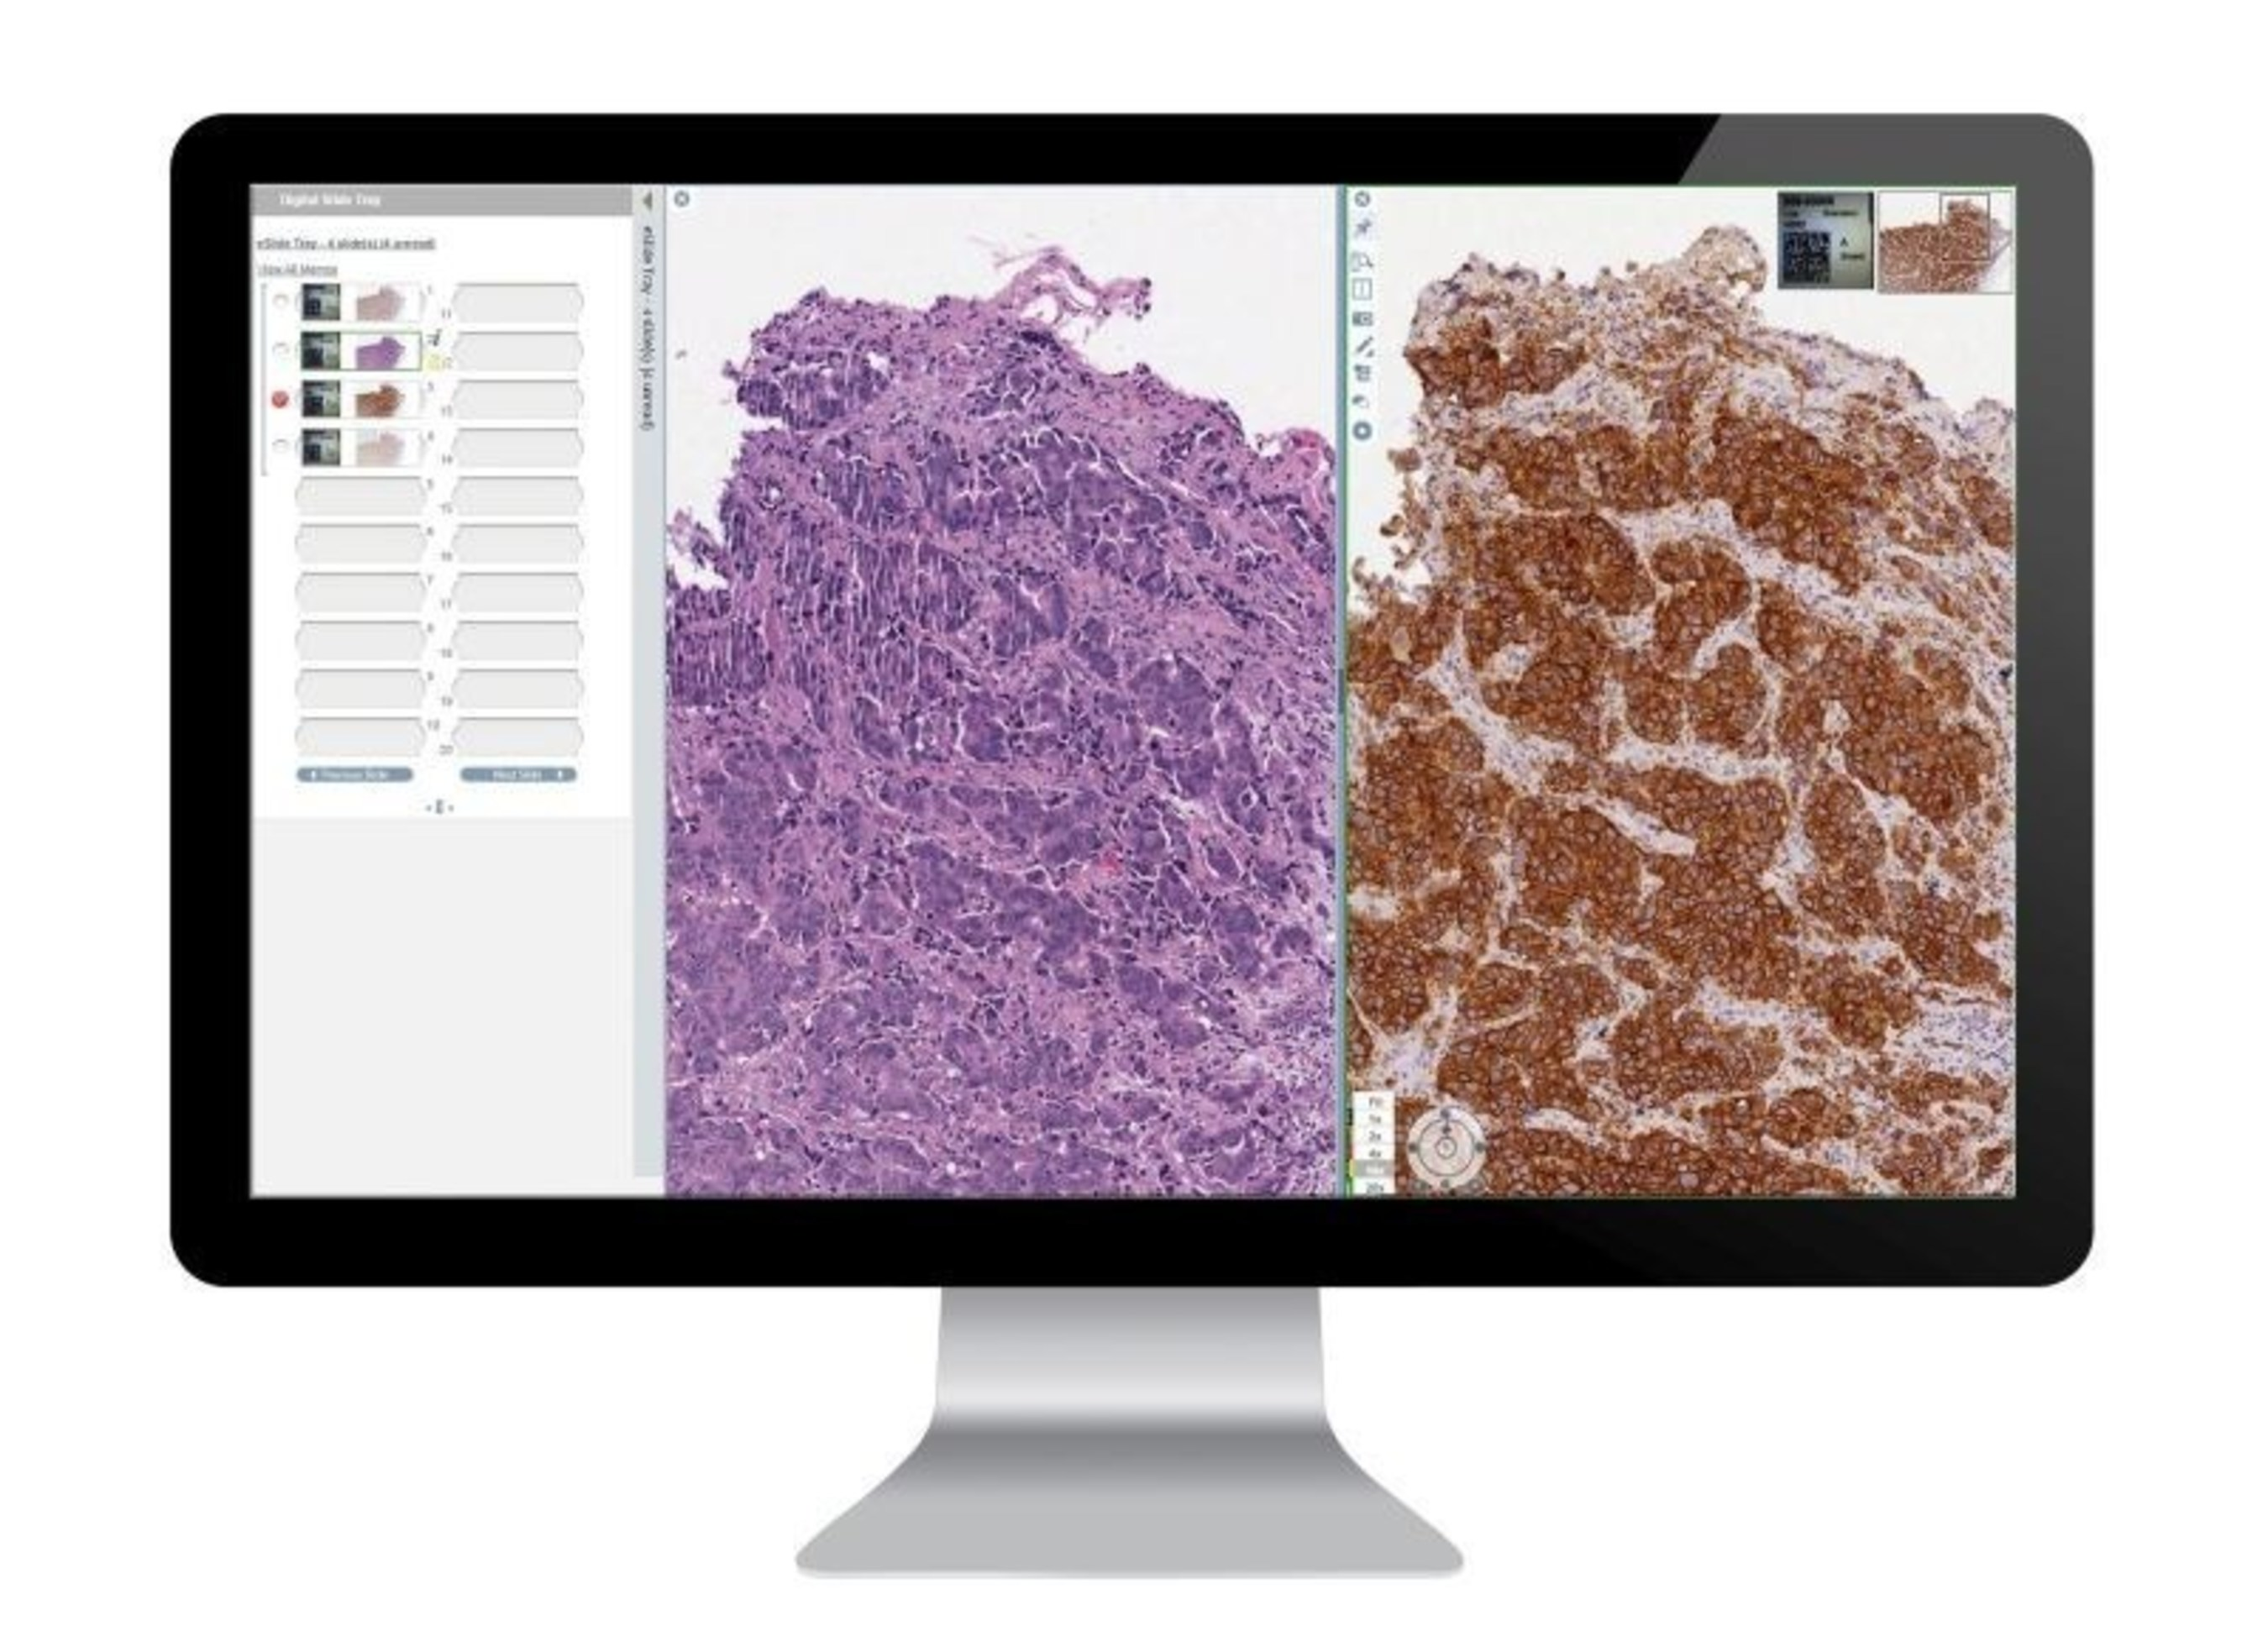 Complete Digital Pathology Solutions from Leica BiosystemsAperio ePathology Solutions provide full scalability and optimal performance from single-site installations to multi-site global hub and spoke networks. With dedicated workflows for healthcare, research and biopharma, coupled with an intuitive interface, the Aperio eSlide Manager 12.3 is the ideal solution to meet the diverse needs of both entry-level and enterprise digital pathology users. For Research Use Only. Not for use in diagnostic procedures. (PRNewsFoto/Leica Biosystems) (PRNewsFoto/Leica Biosystems)